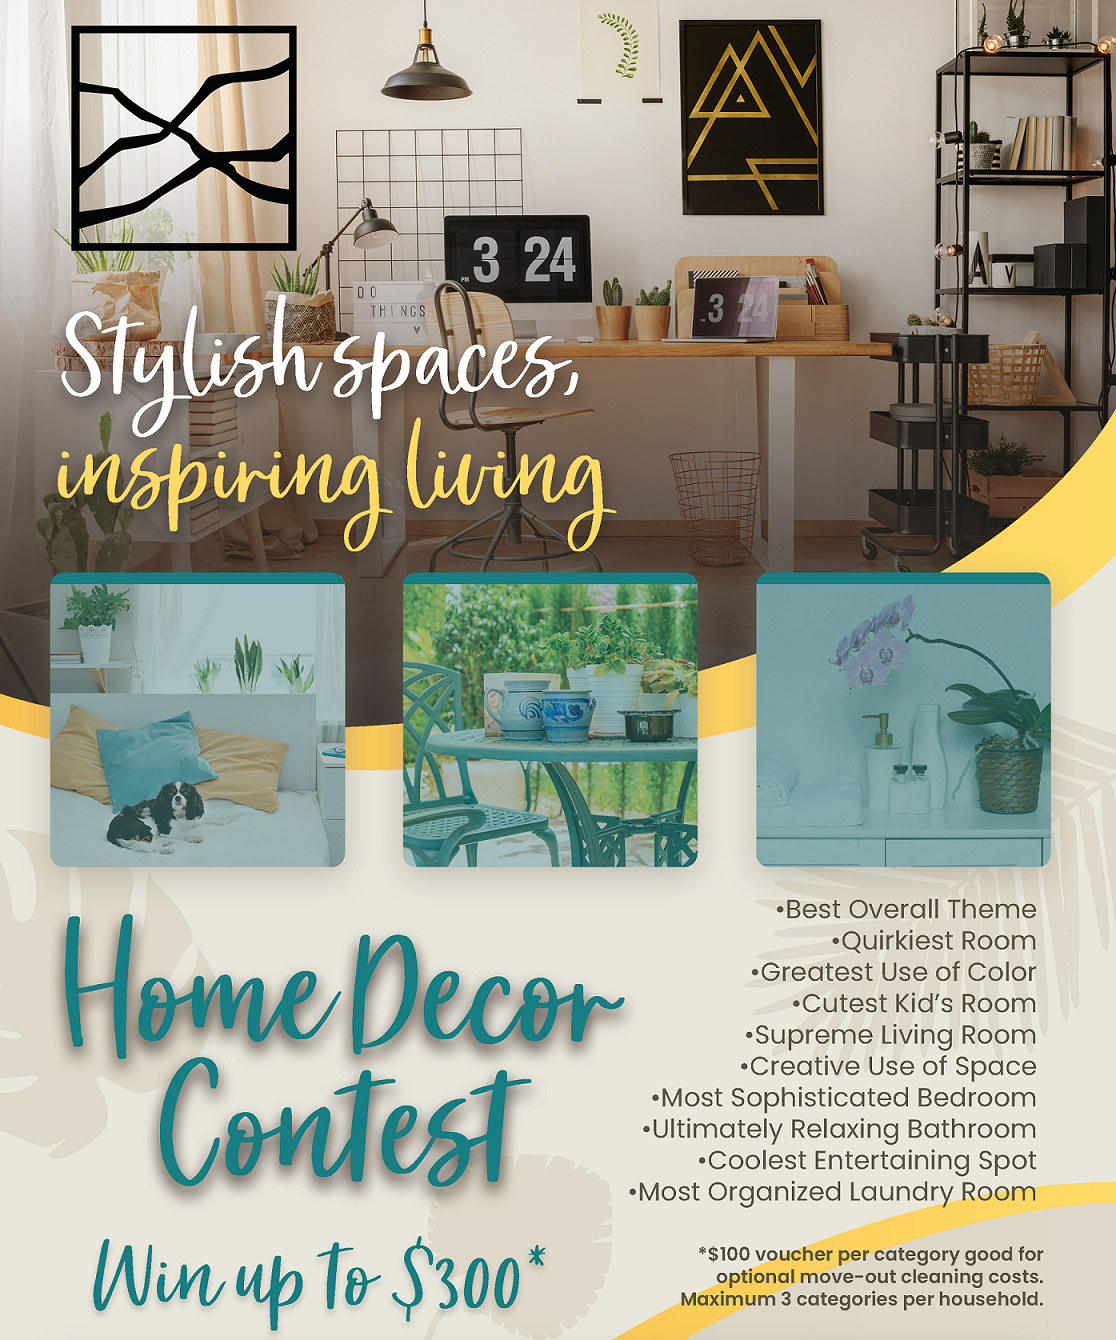 Home Decor Contest — The Villages at Fort Irwin